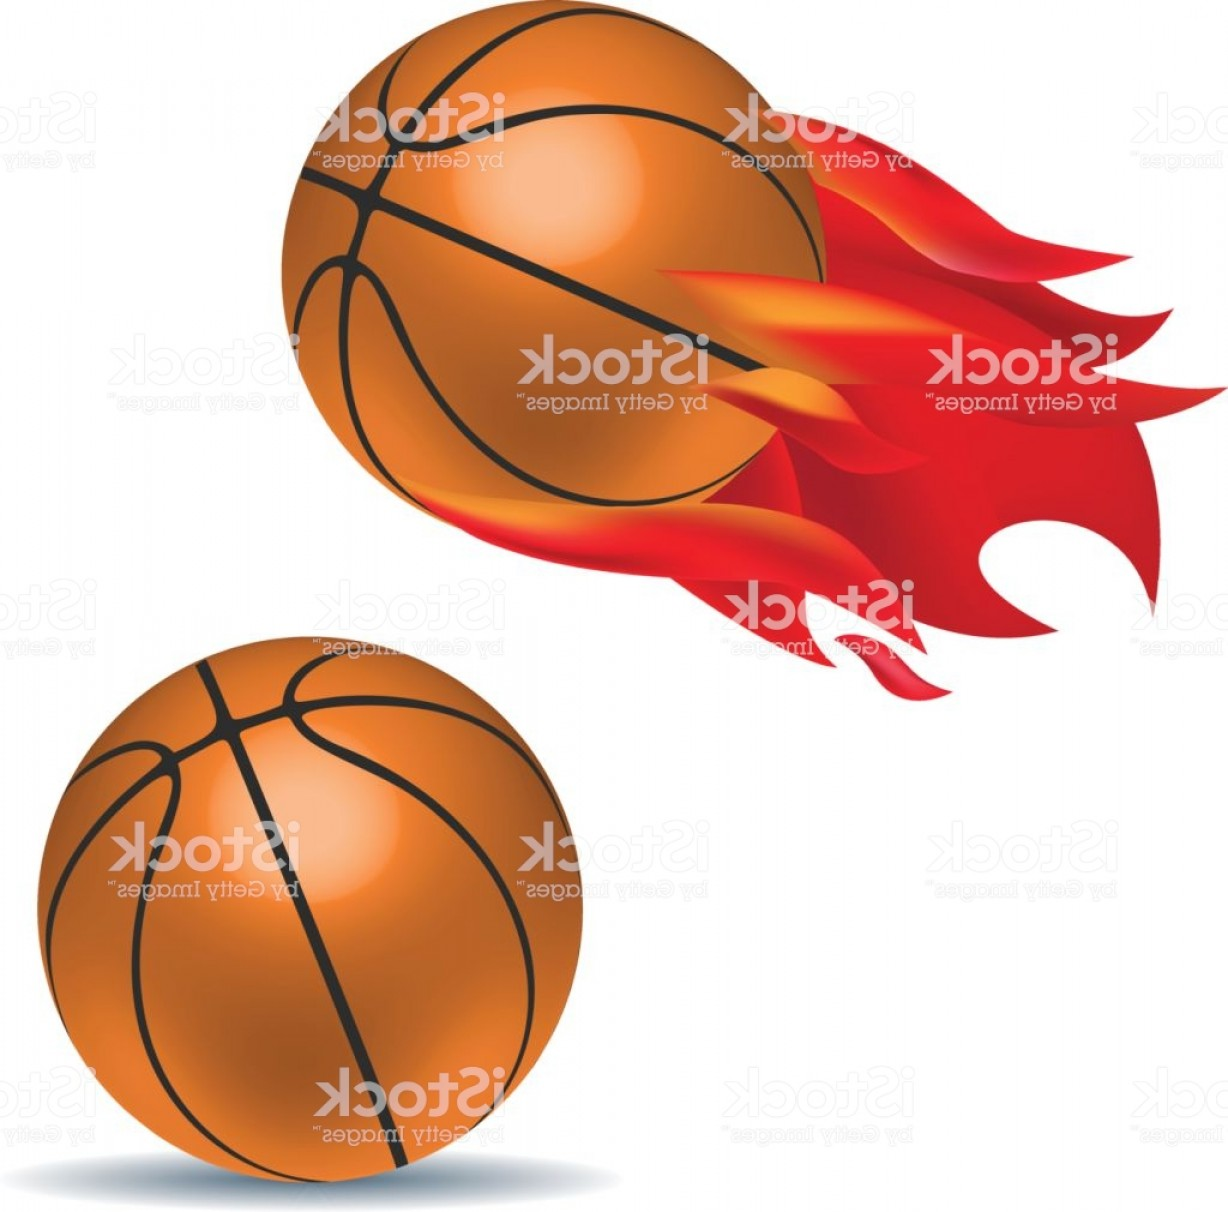 Motion Basketball Vector: D Art Of Orange Black Basketball In Motion With Red Fire Trail Ball With Shadow Gm